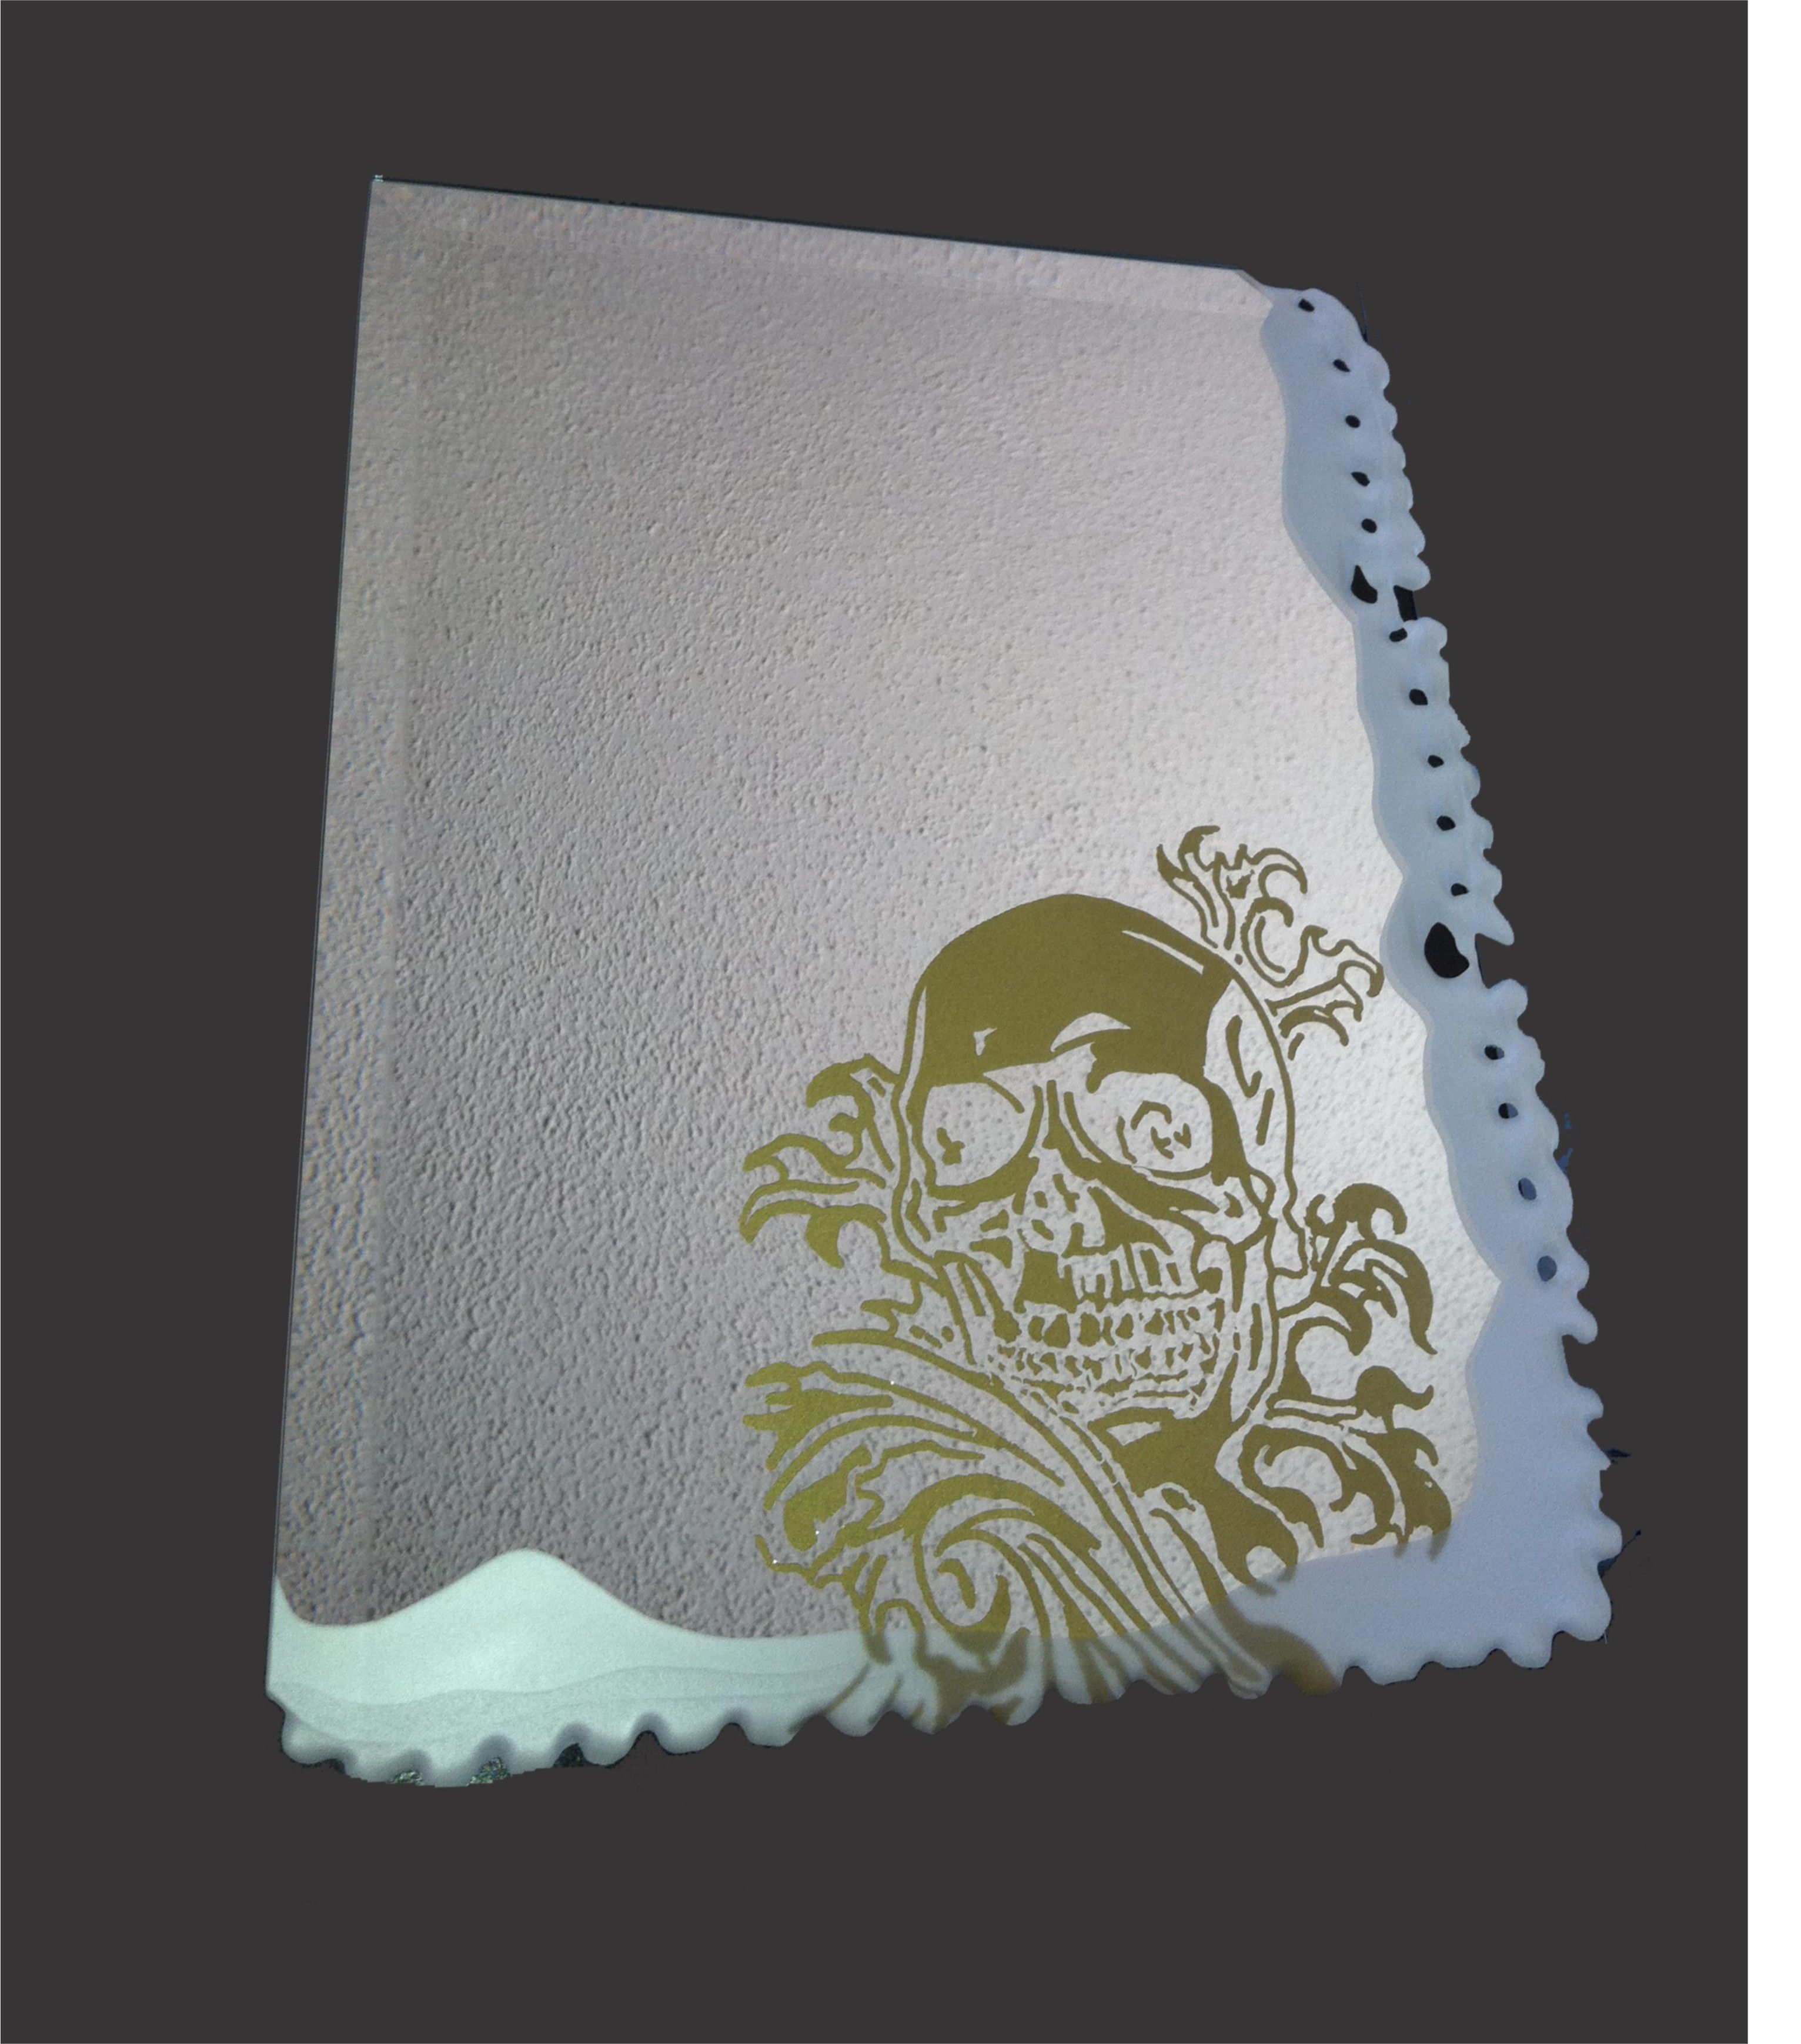 Skull Waves On Mirror Is A Creative Surface Etch With Creative Edging Etched Mirror Sand Glass Glass Mirror